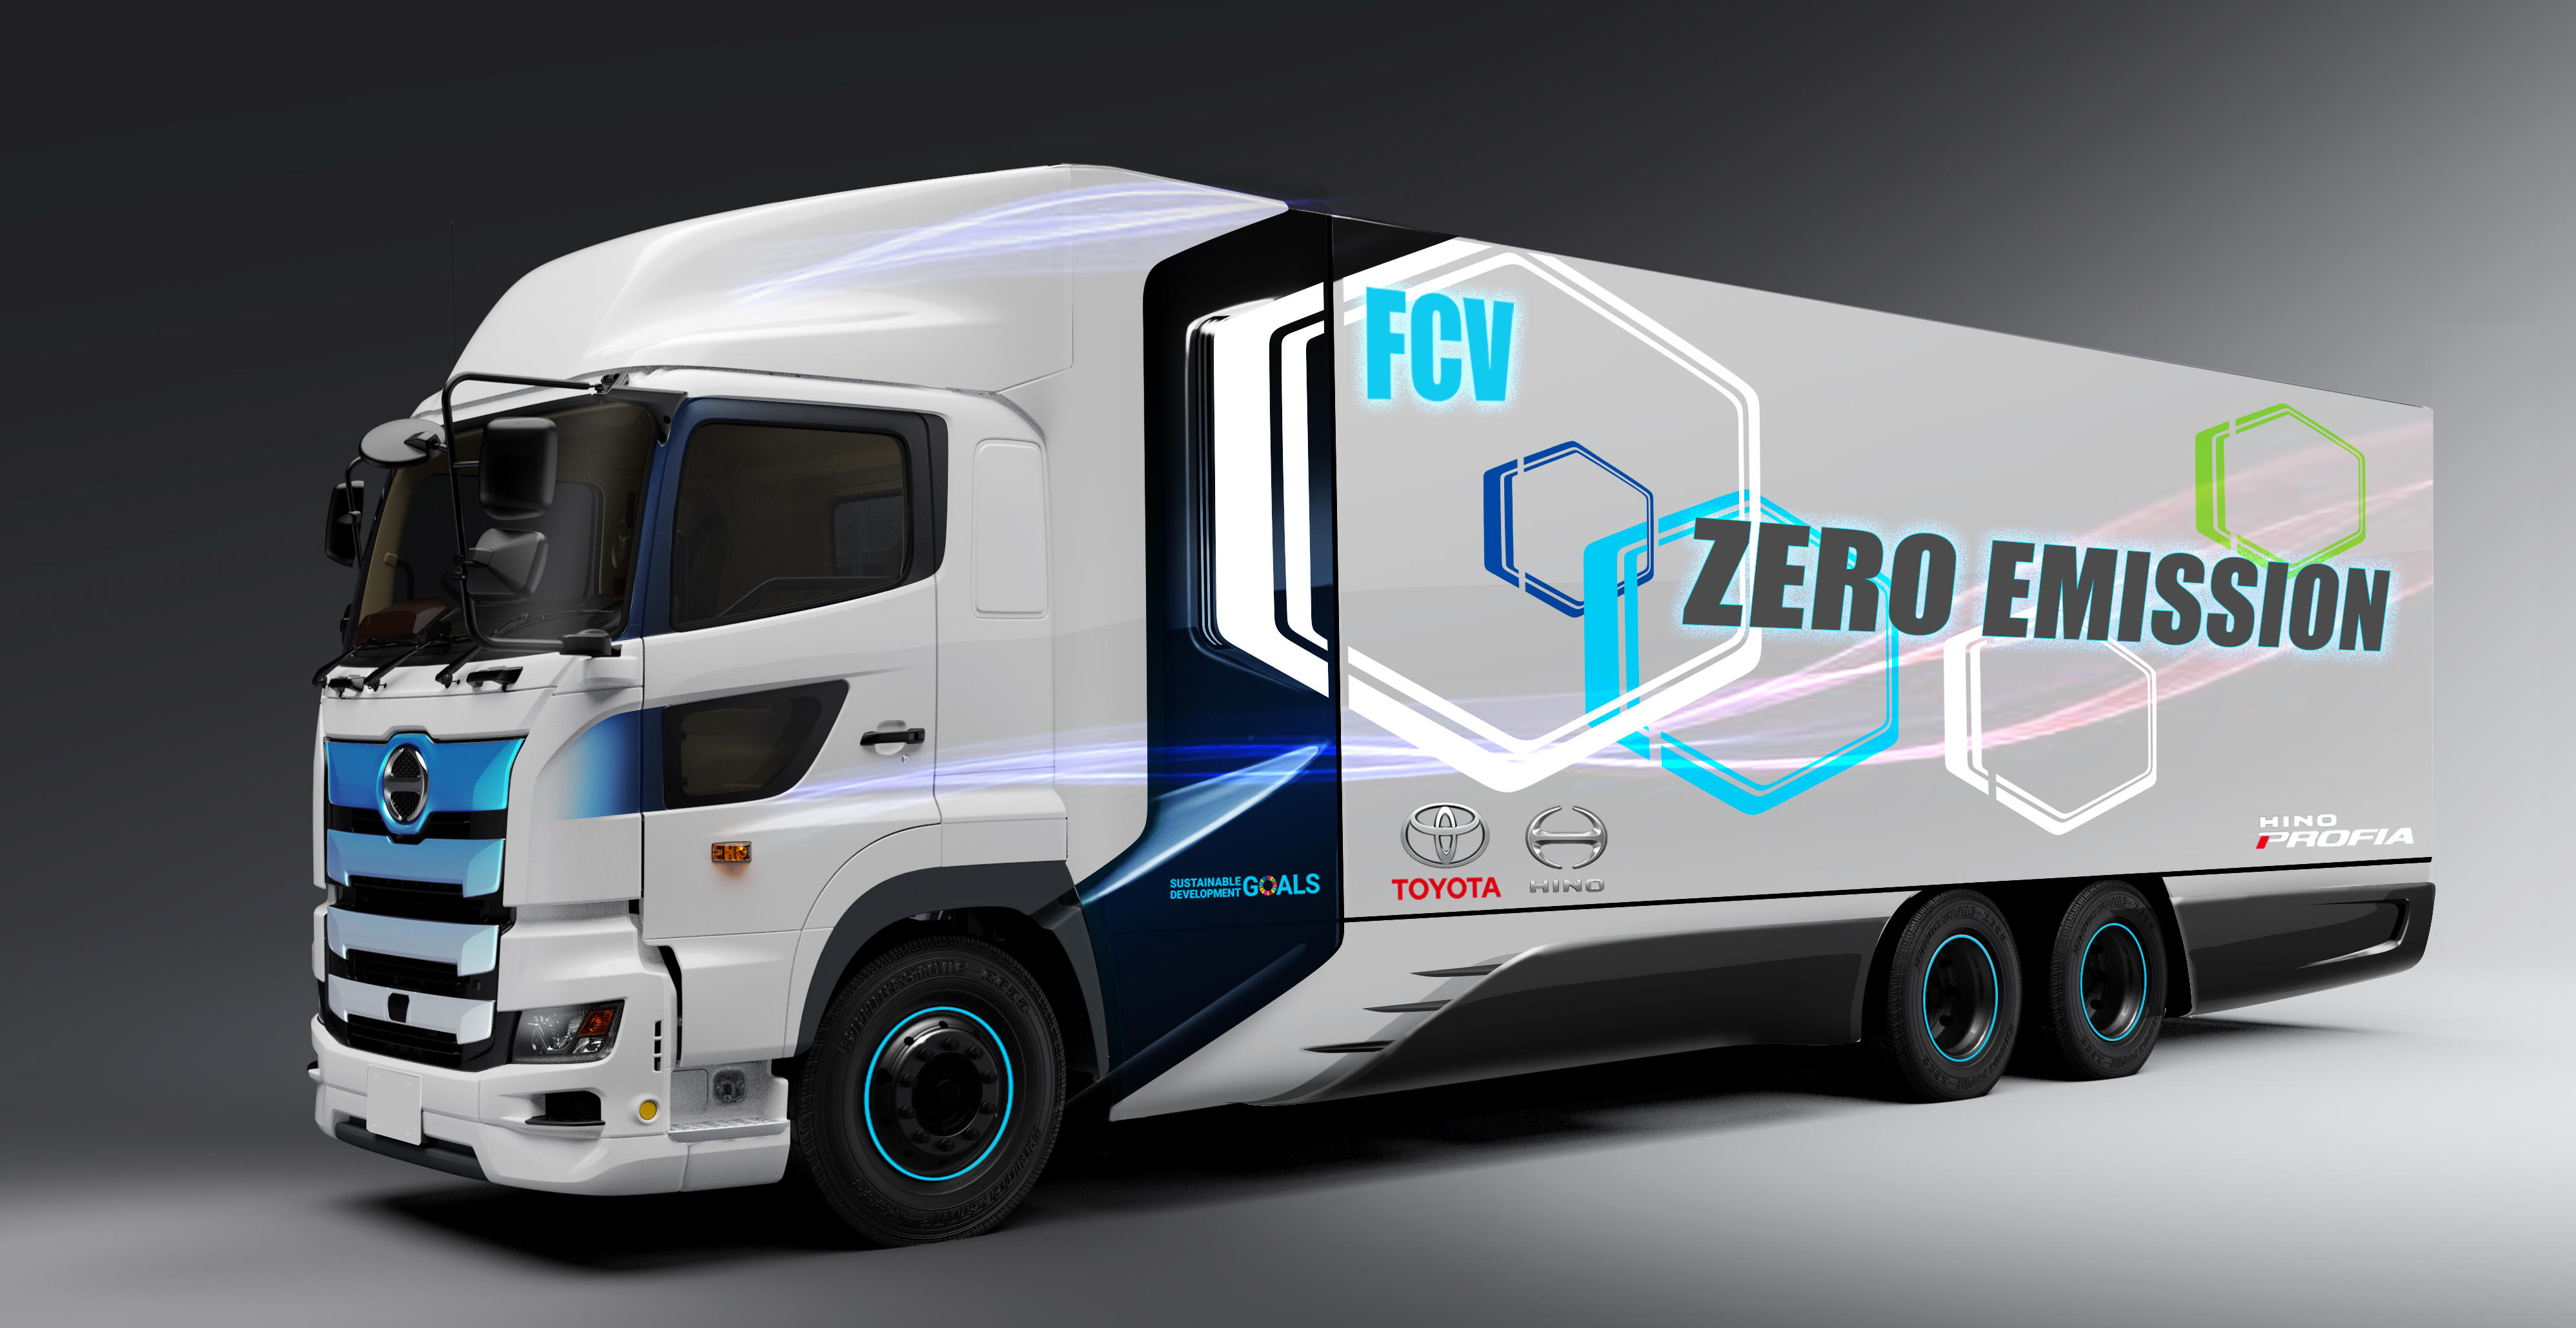 Toyota Motor Corporation's latest fuel cell project is a joint venture between Toyota and its wholly owned, truck-making subsidiary, Hino, to develop this zero emissions heavy duty fuel cell truck.